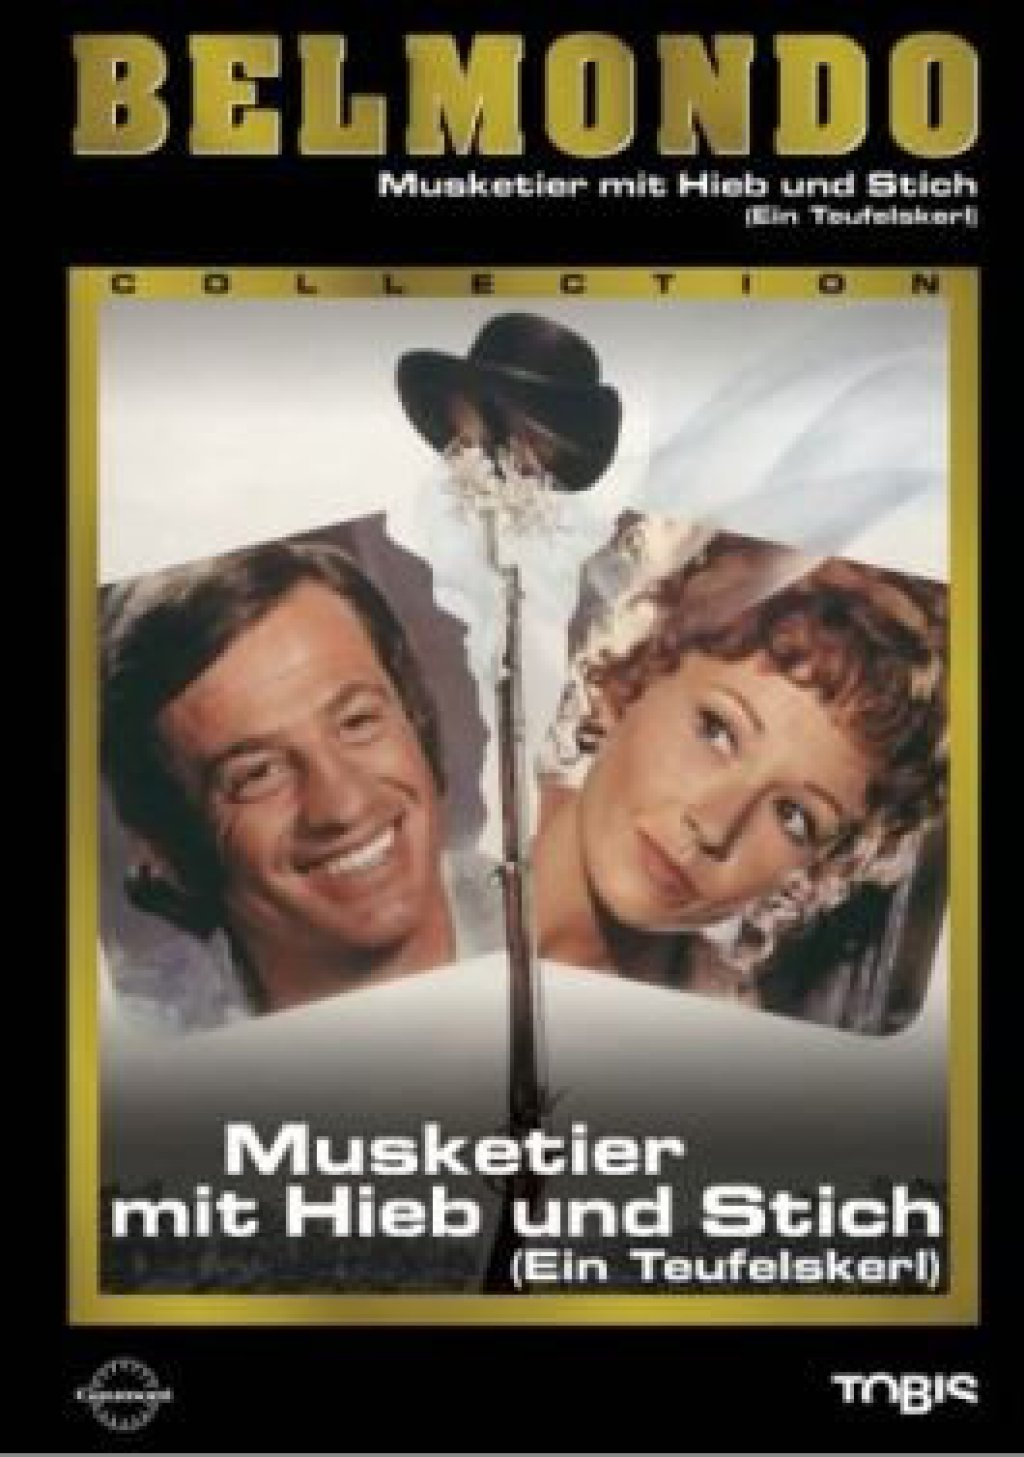 Musketier mit Hieb und Stich (Ein Teufelskerl) - Belmondo Collection (DVD)